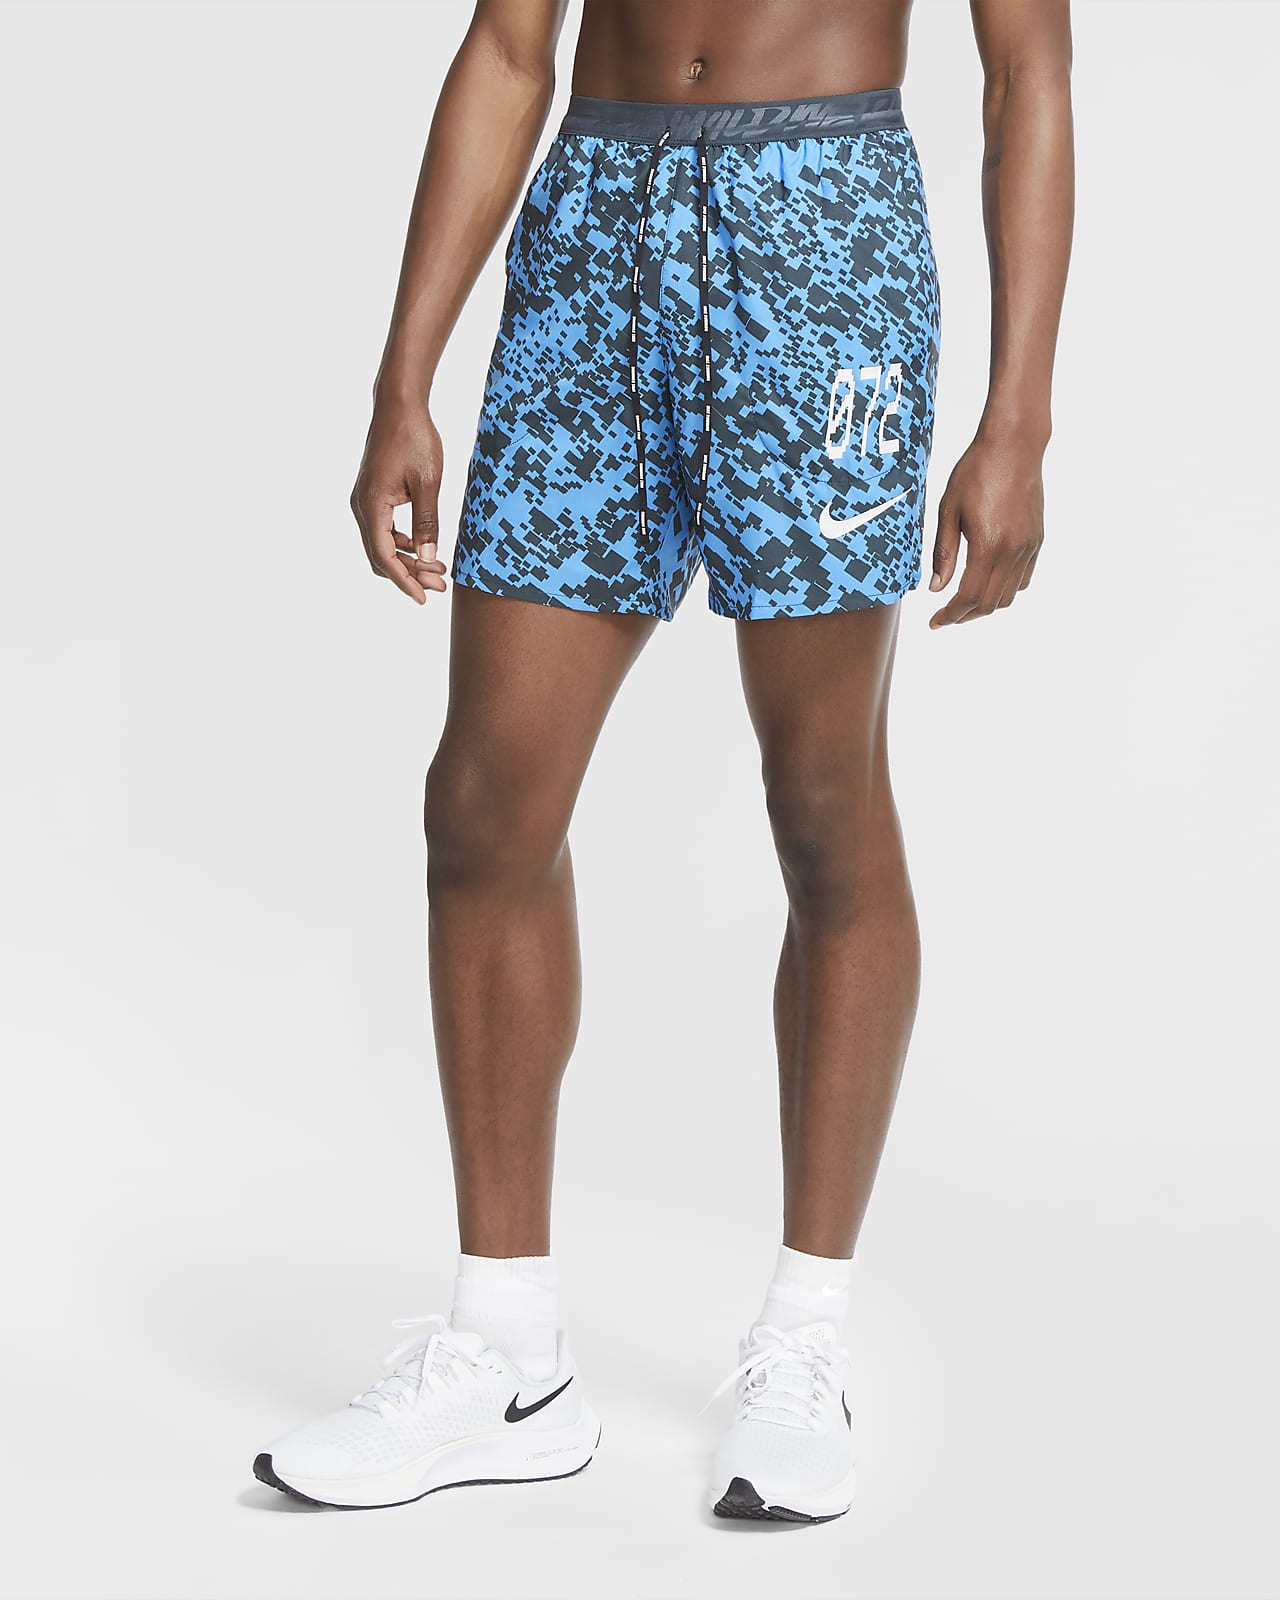 Nike Stride Wild Run Men's Unlined Running Shorts